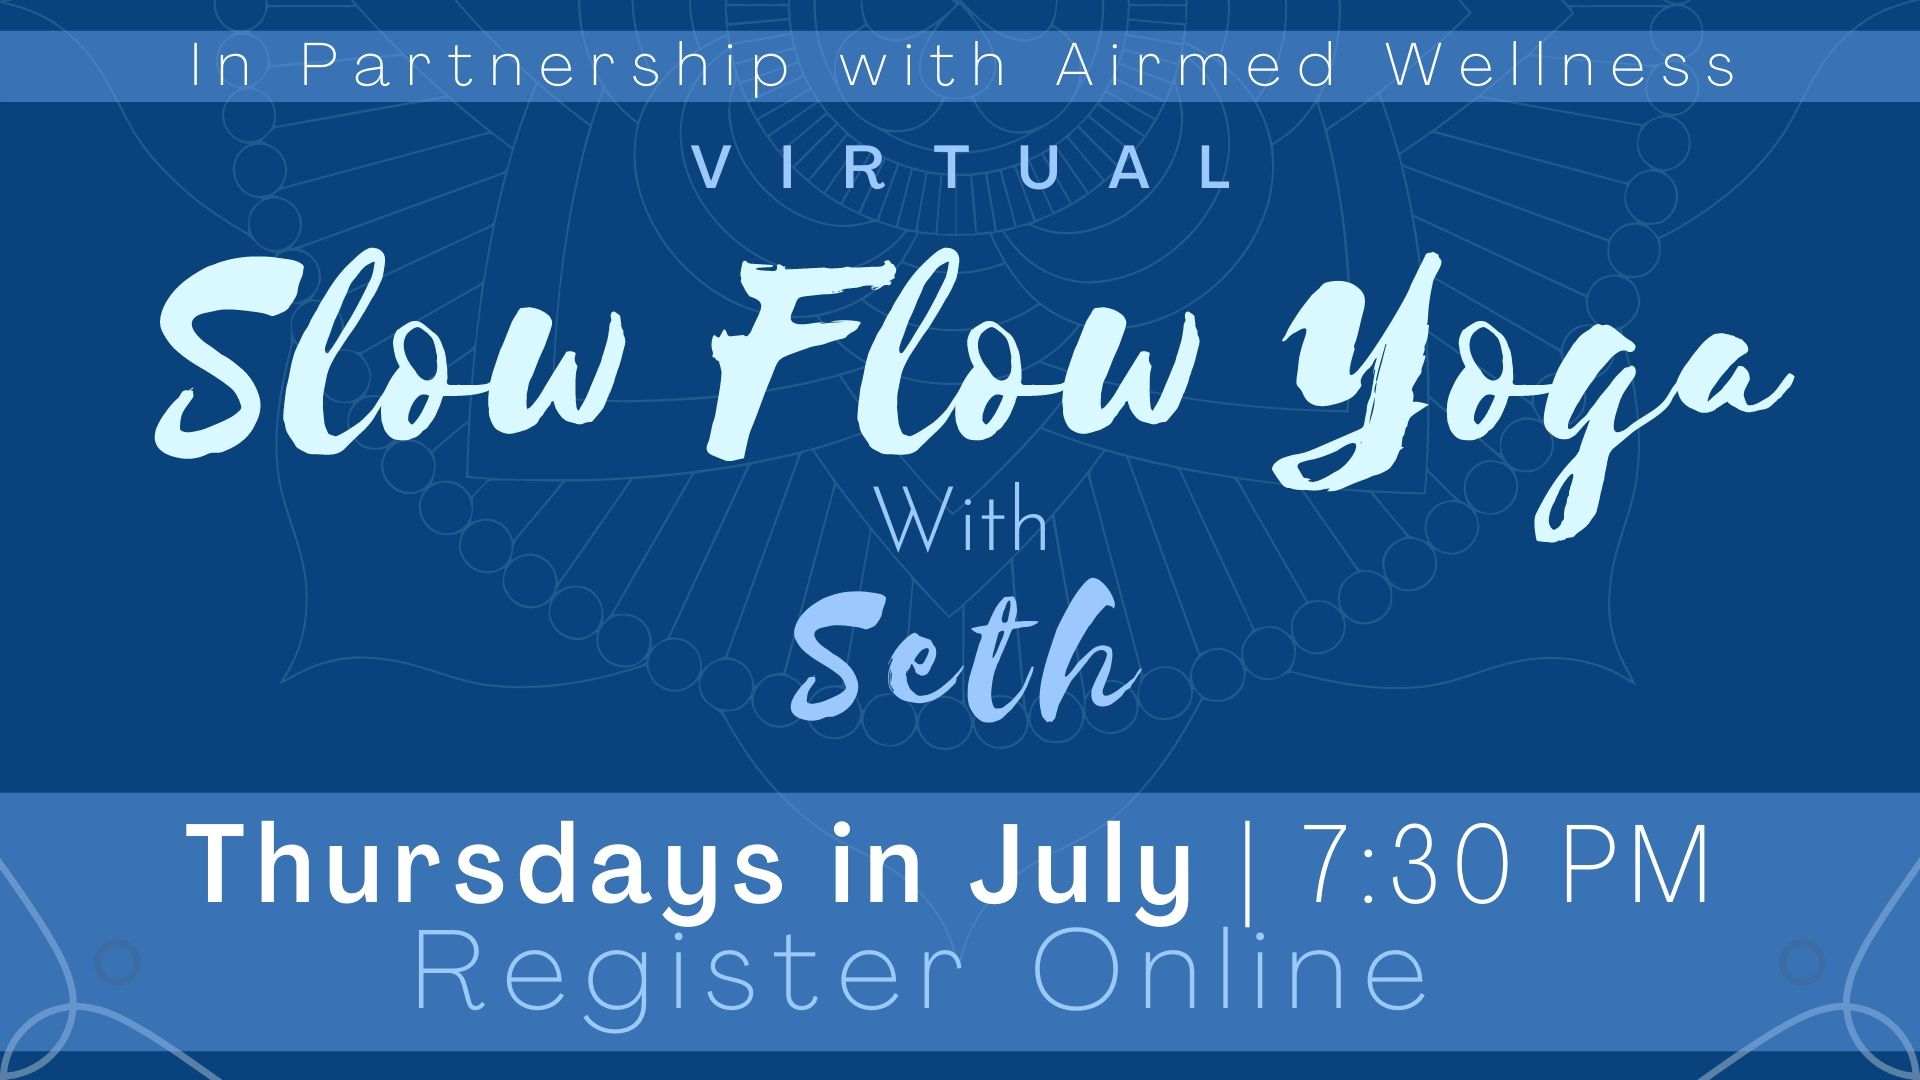 Slow Flow Yoga with Seth (Virtual Program)